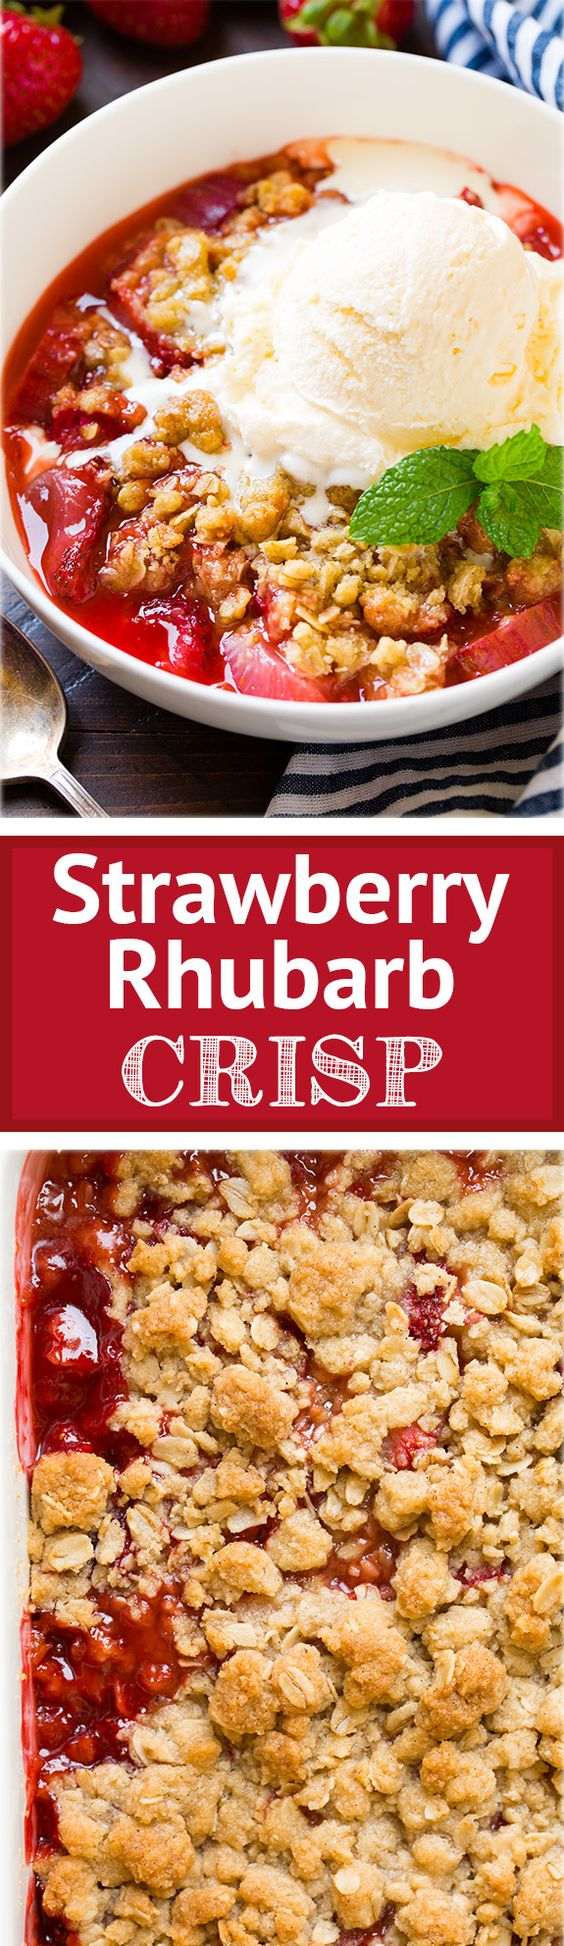 Strawberry Rhubarb Crisp | Recipe | Strawberry Rhubarb Crisp, Rhubarb ...